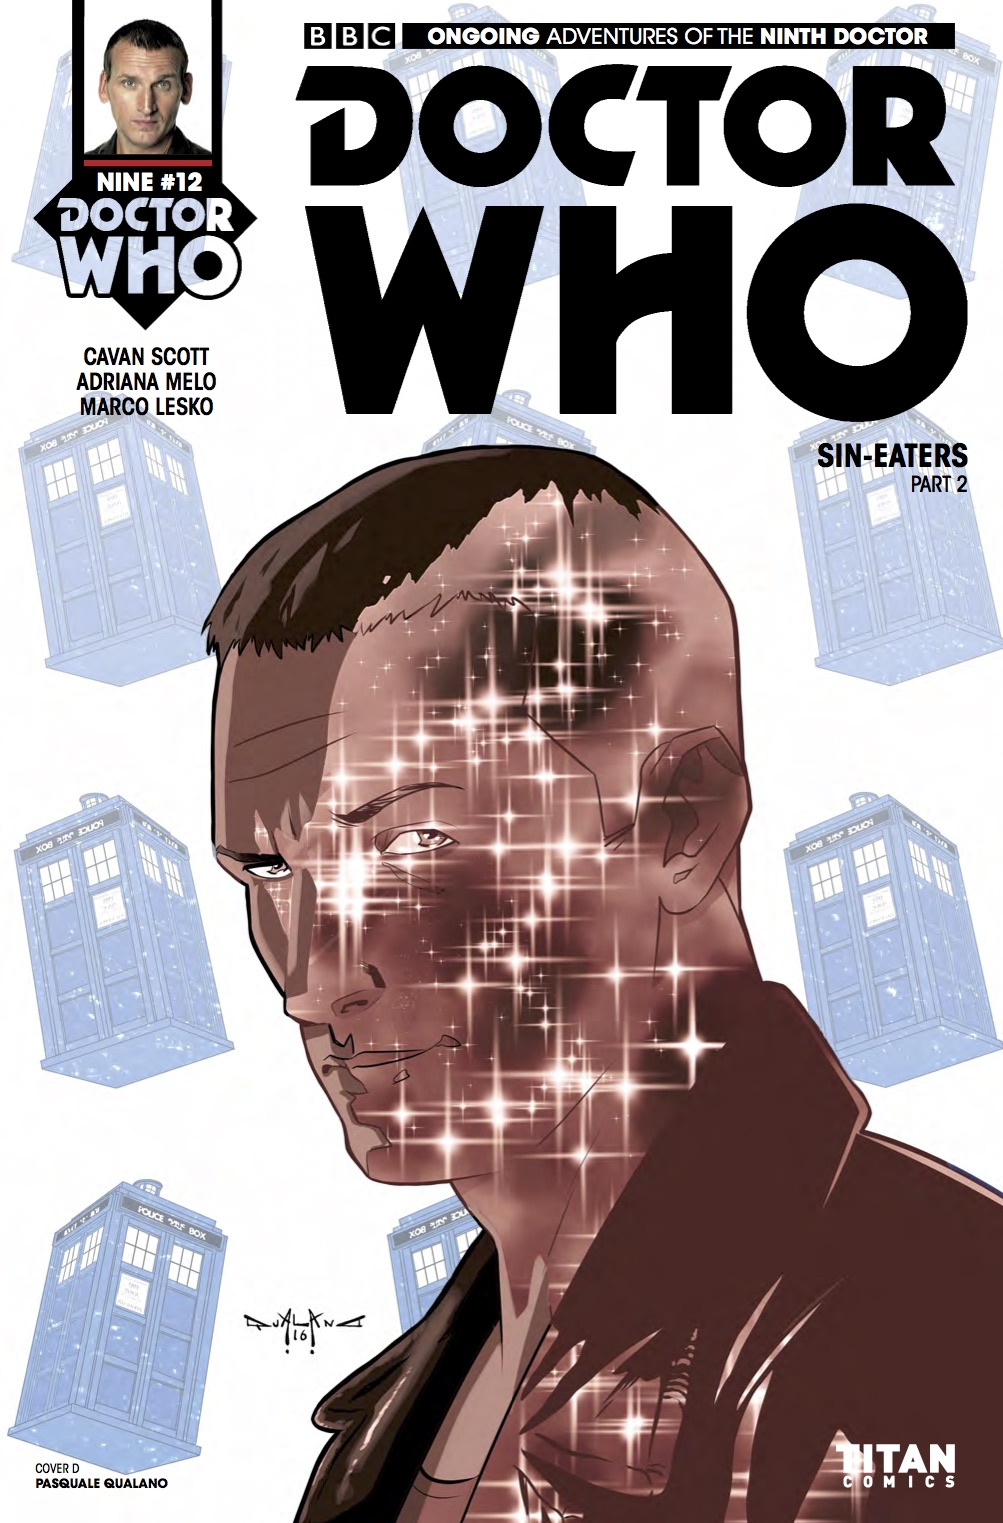 DOCTOR WHO: NINTH DOCTOR #12 Cover D (Credit: Titan PASQUALE QUALANO)